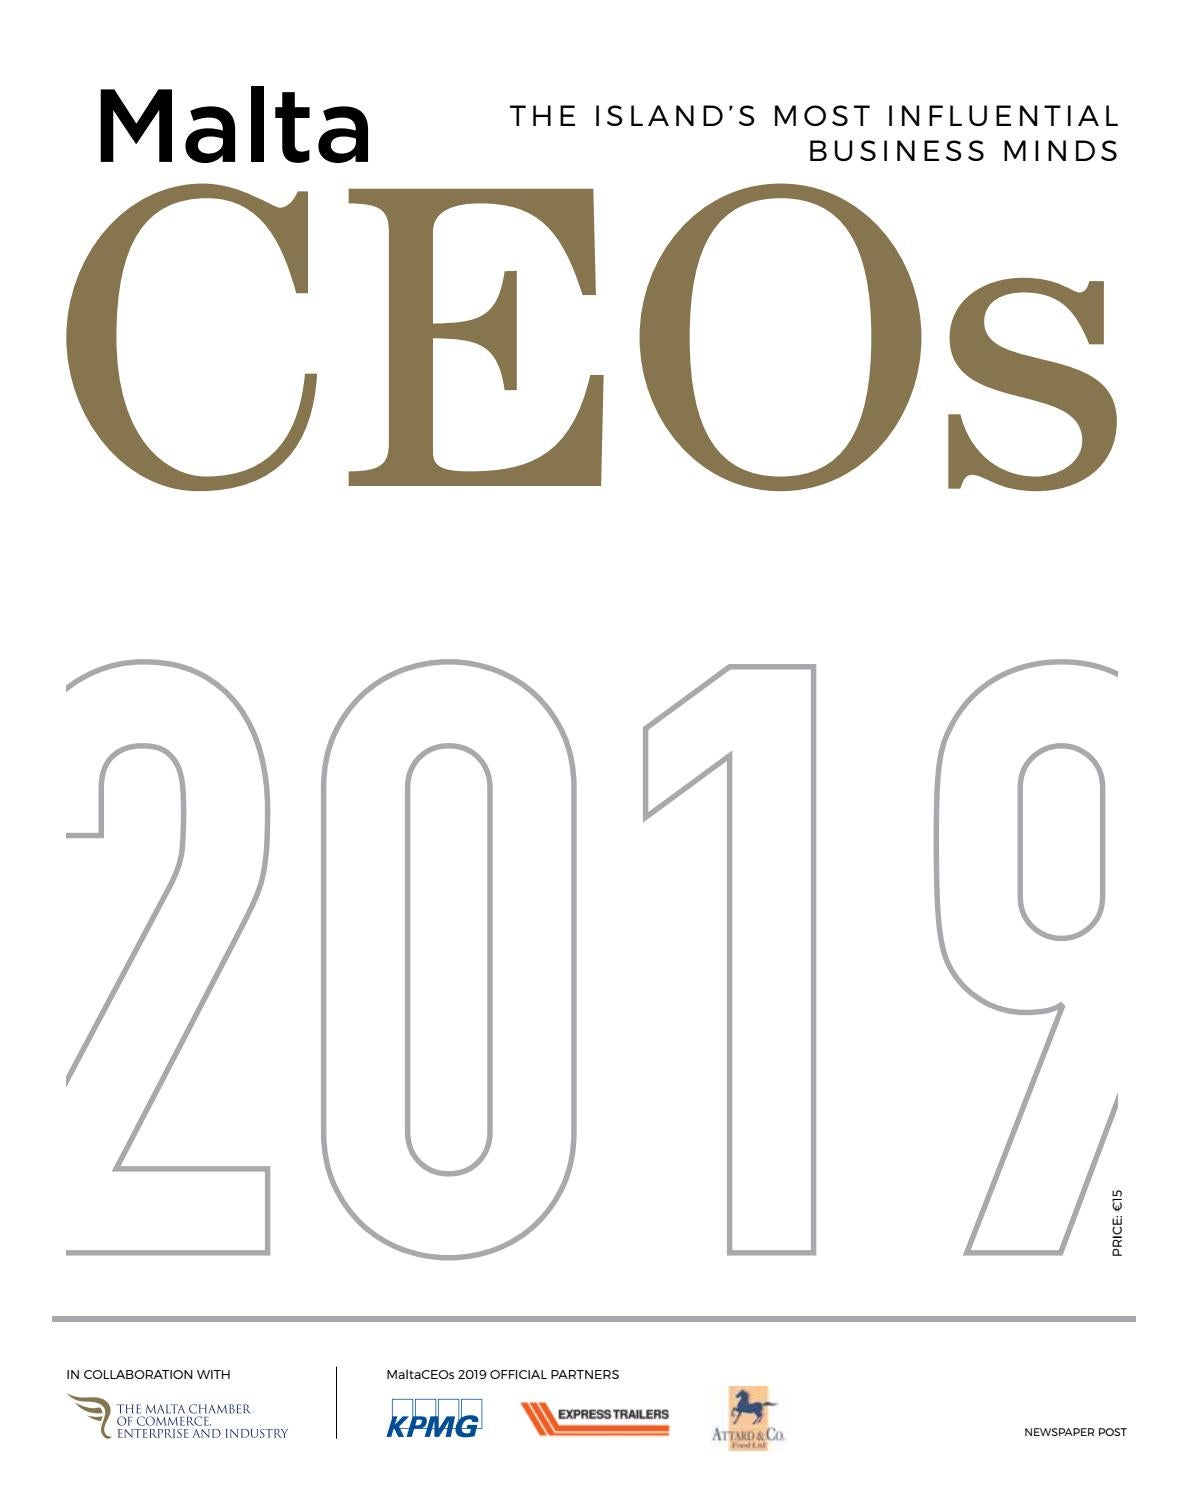 Malta Ceos 2019 By Content House Group Issuu Element Case Sector Apple Iphone 7 Plus Citron